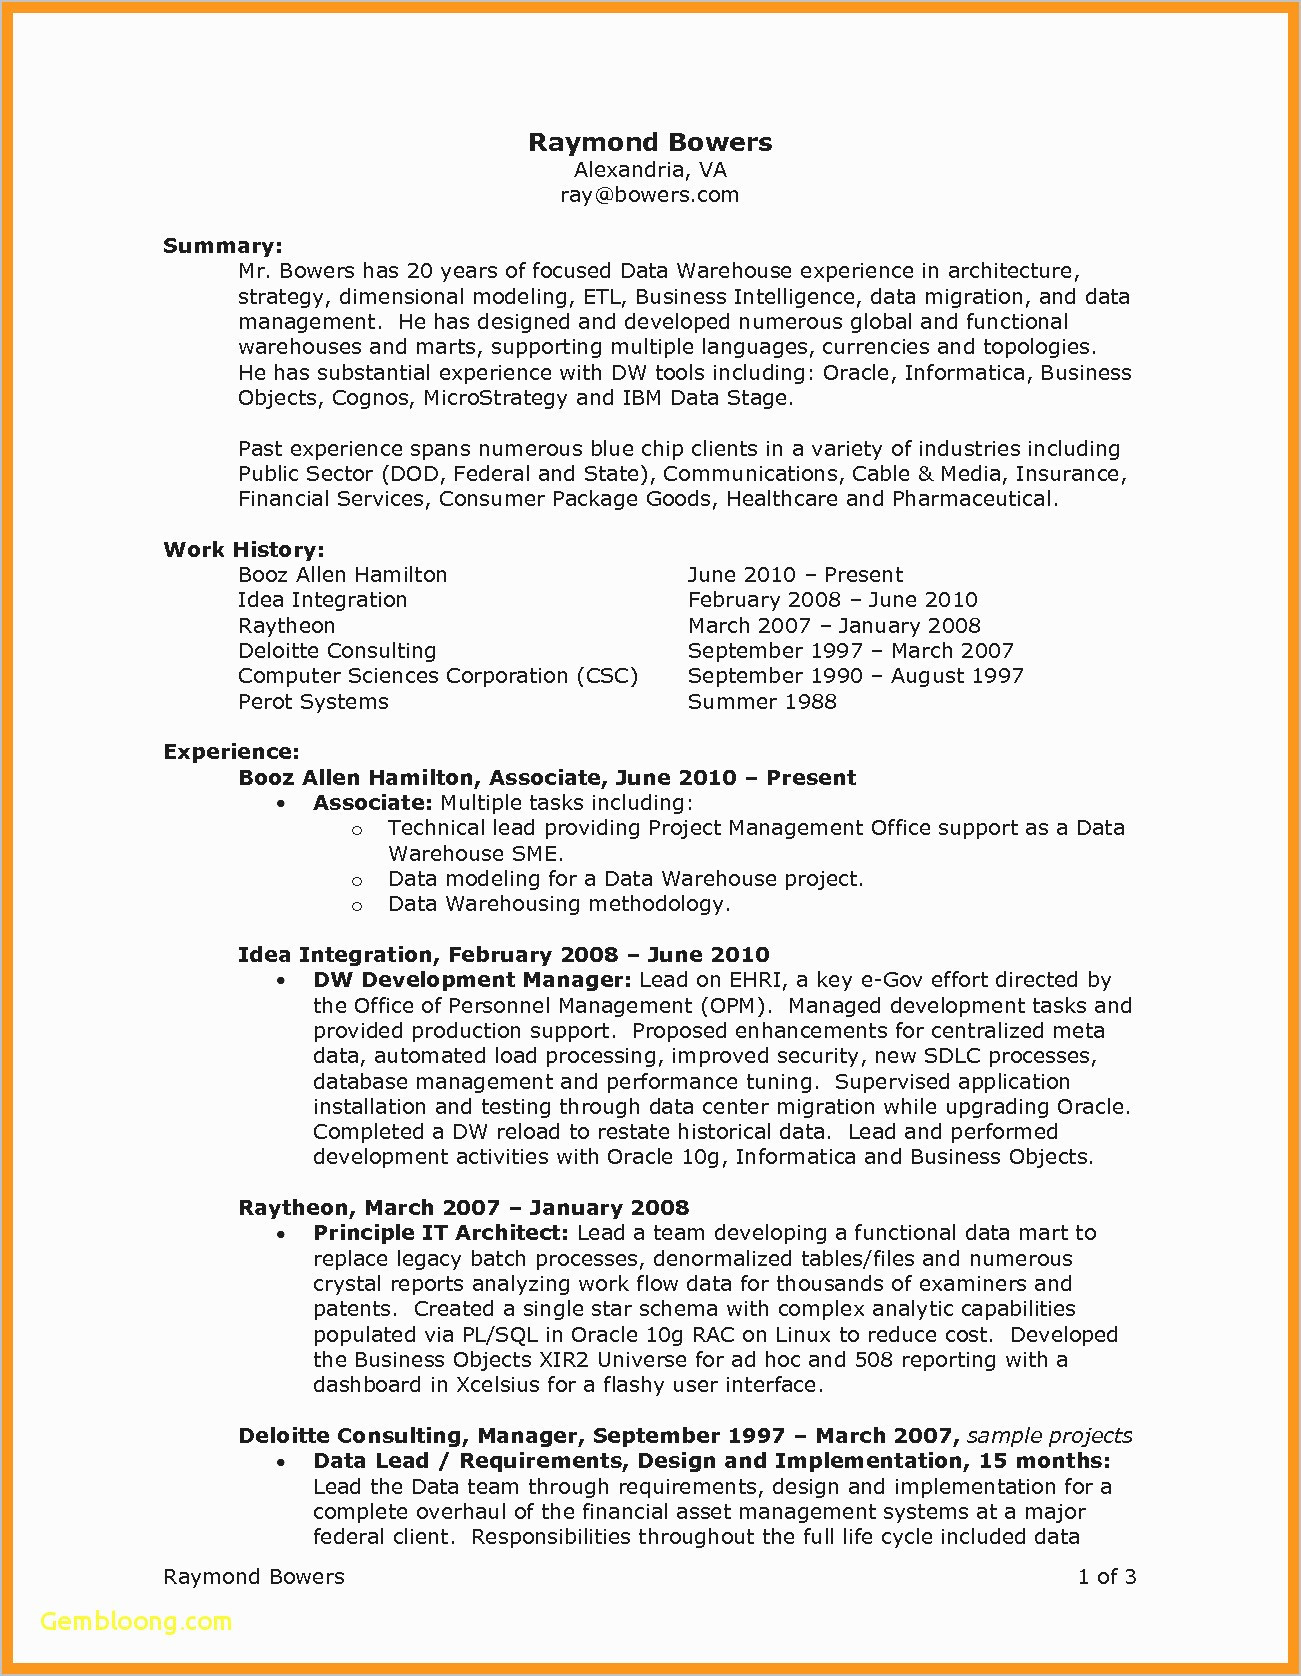 Resume Examples for Warehouse Worker - Warehouse Cover Letter Awesome Resume for Worker Elegant Template